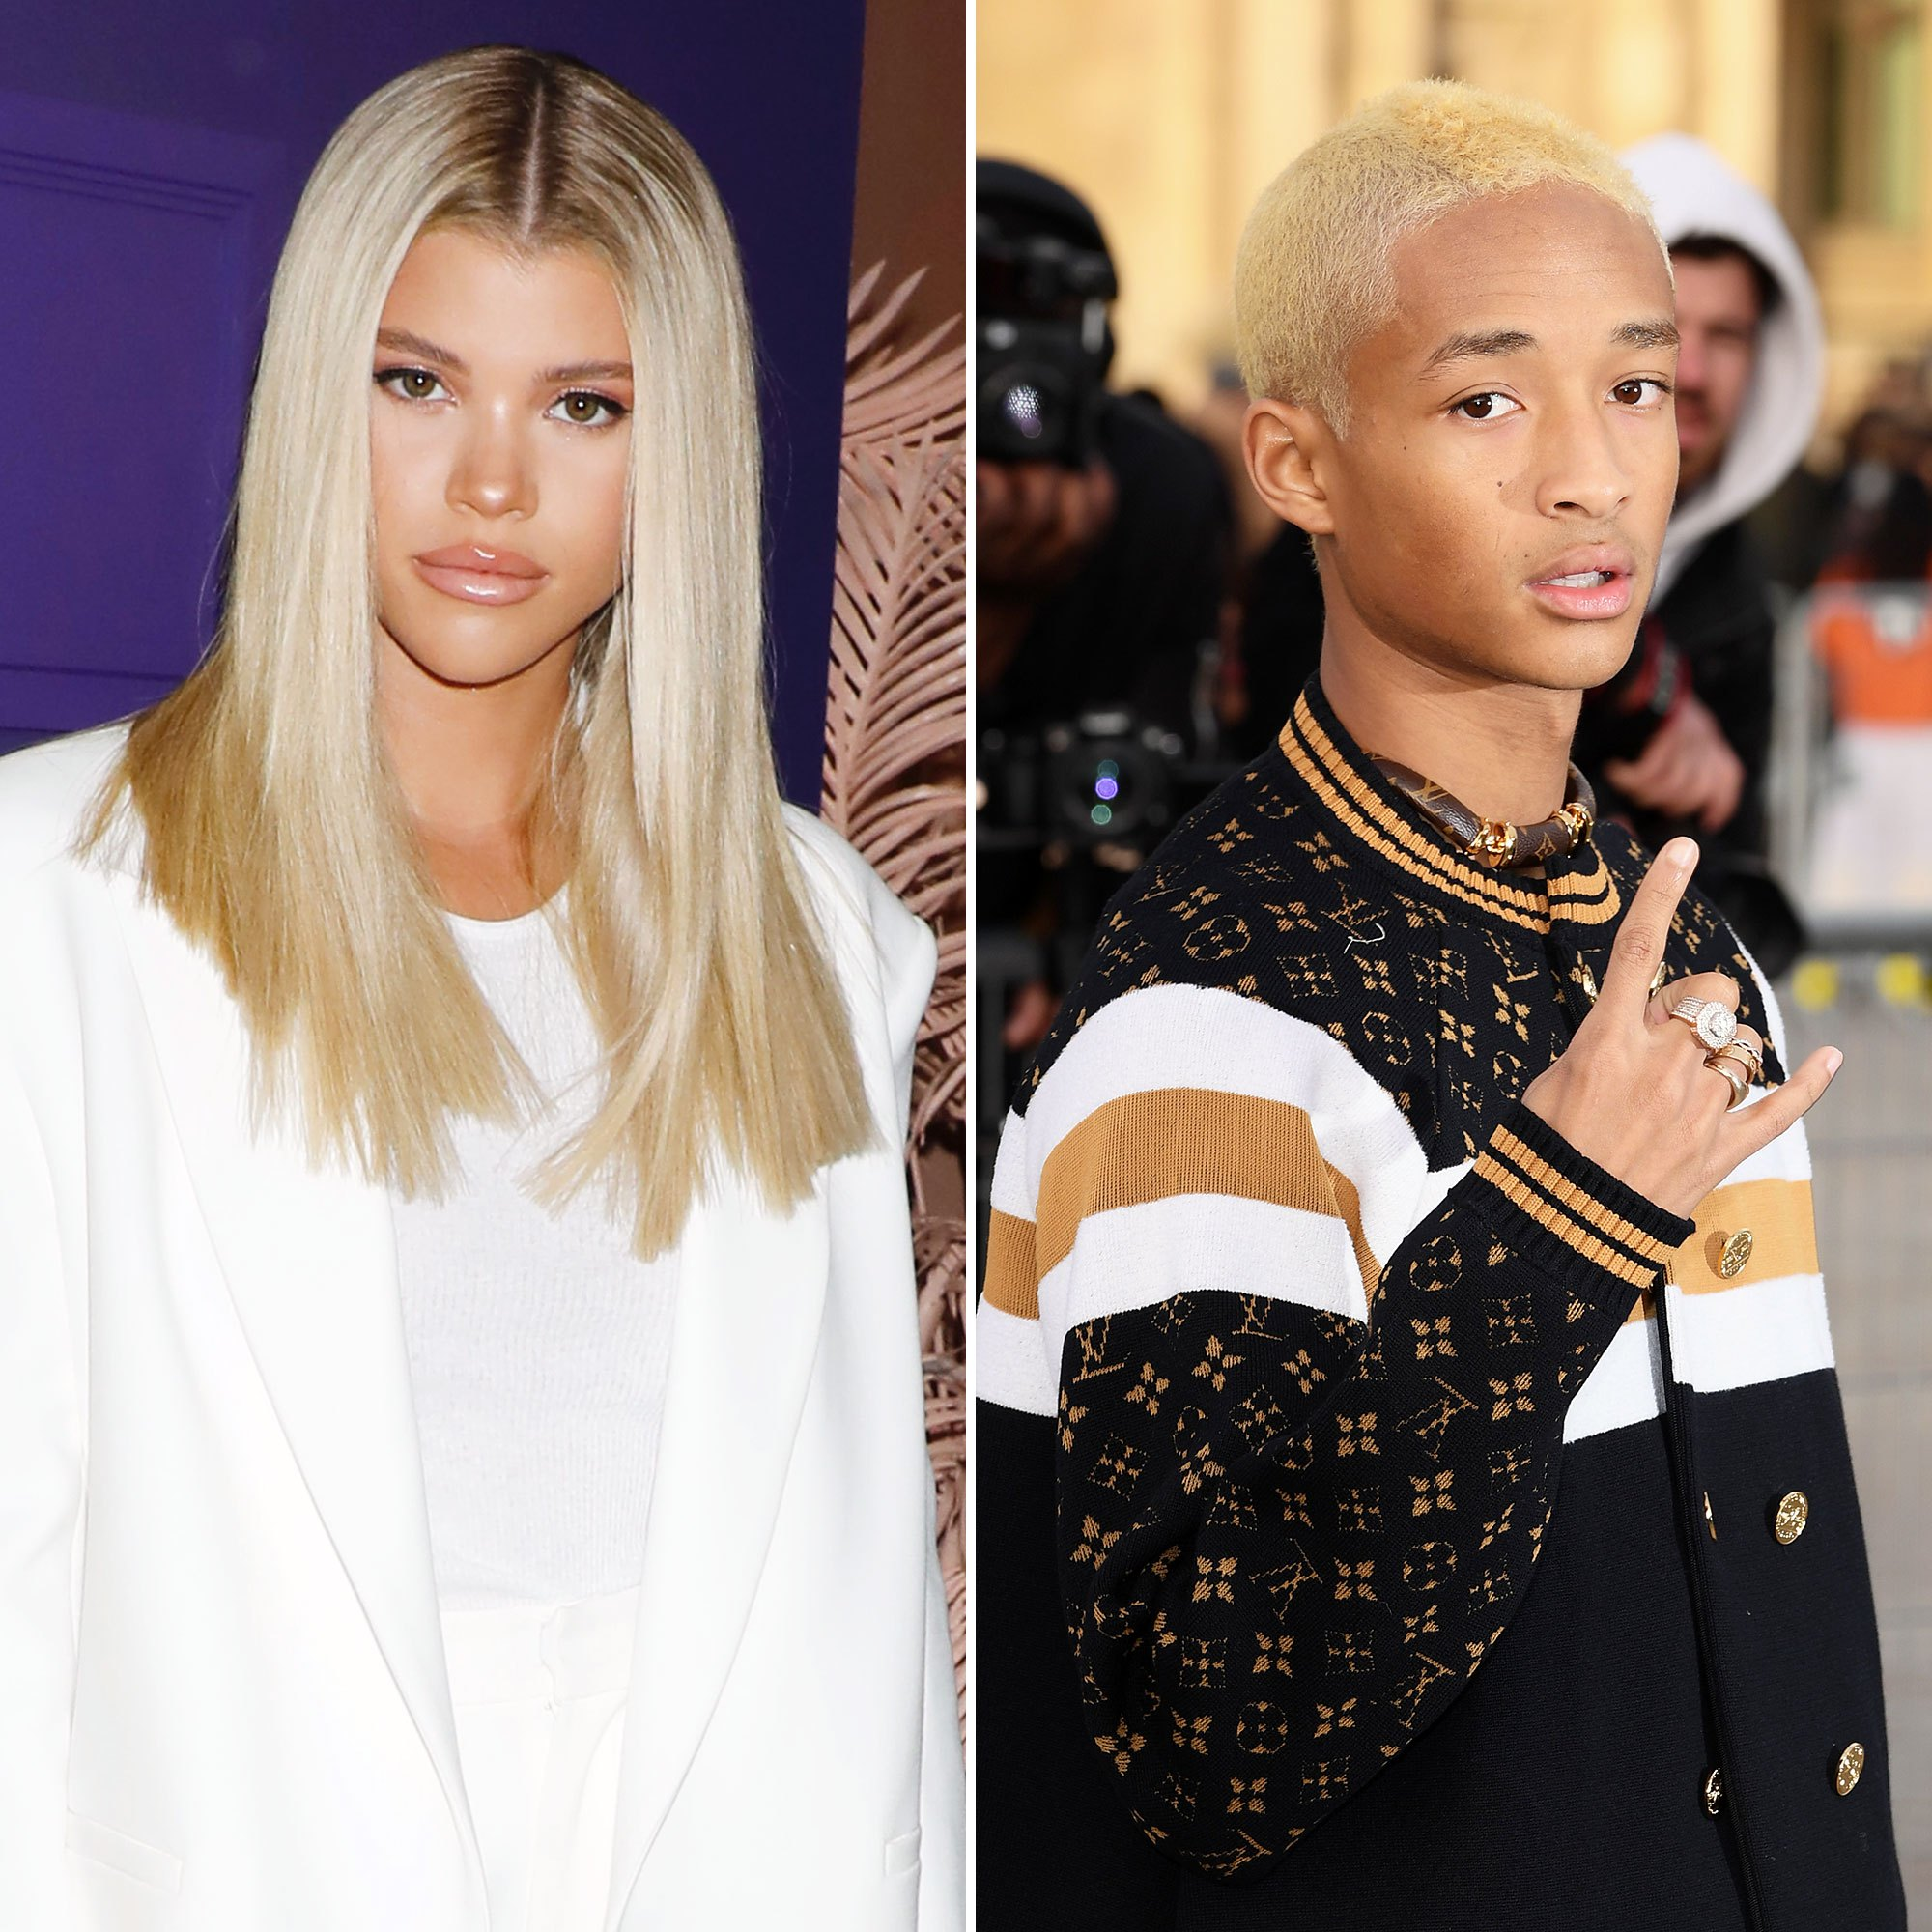 """""""sofia-richie-and-jaden-smith-photographed-on-dinner-outing-together-following-her-gil-ofer-pda-filled-miami-trip"""""""